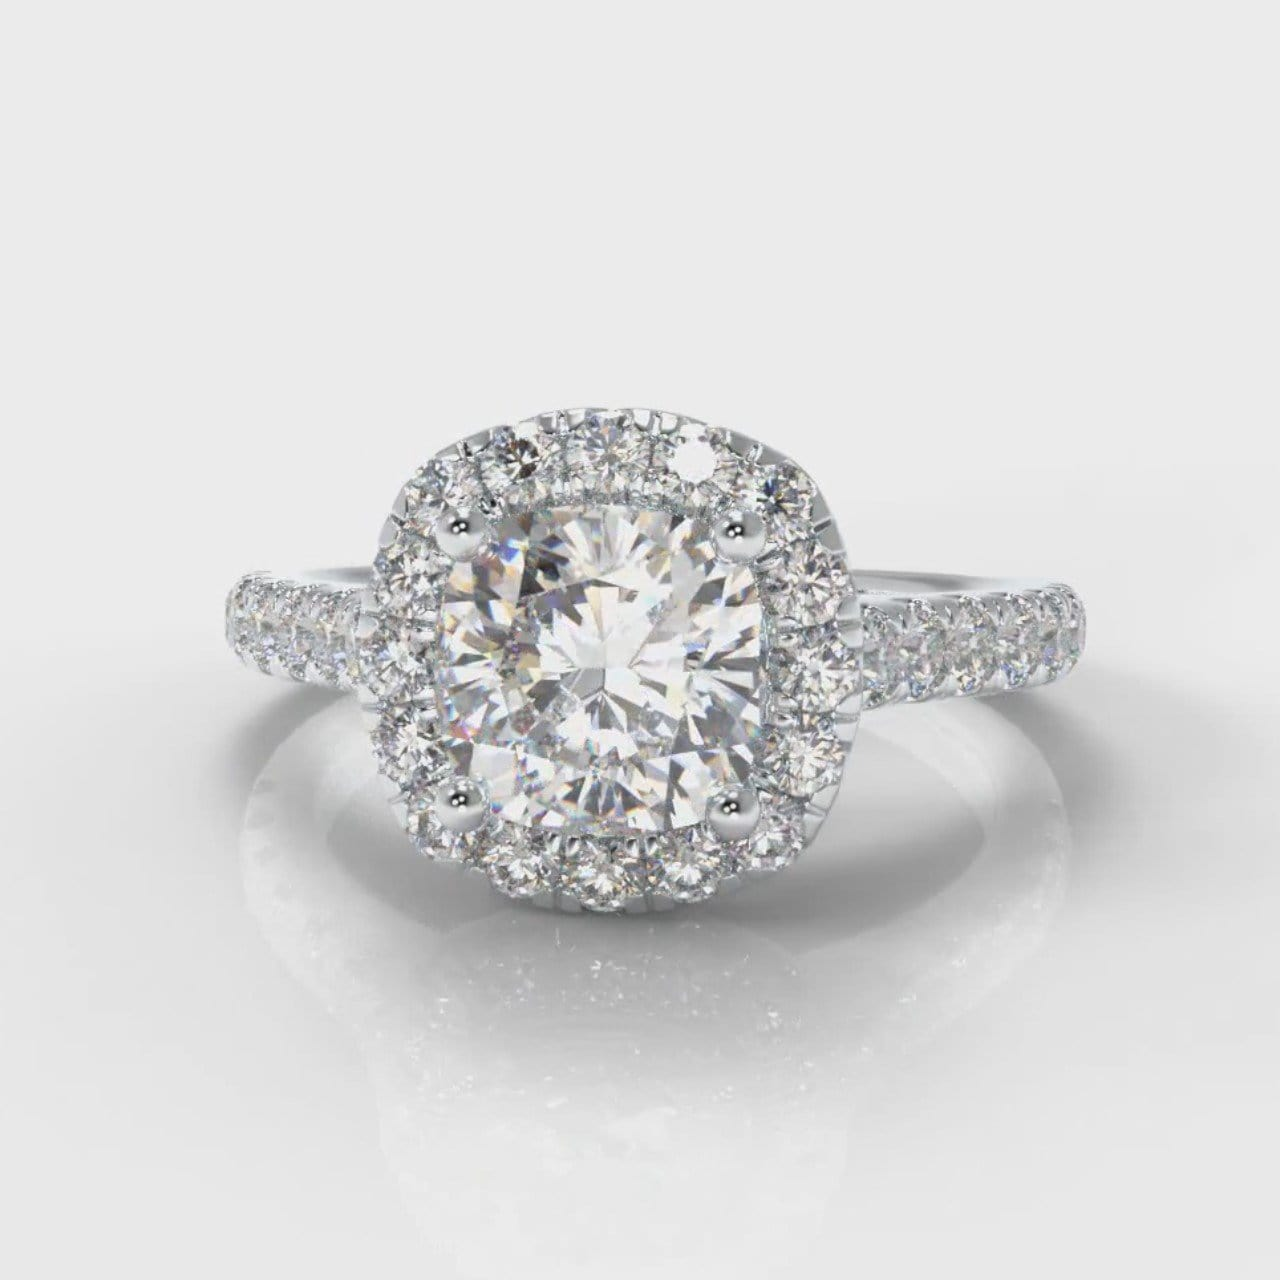 Micropavé Cushion Cut Diamond Halo Engagement Ring